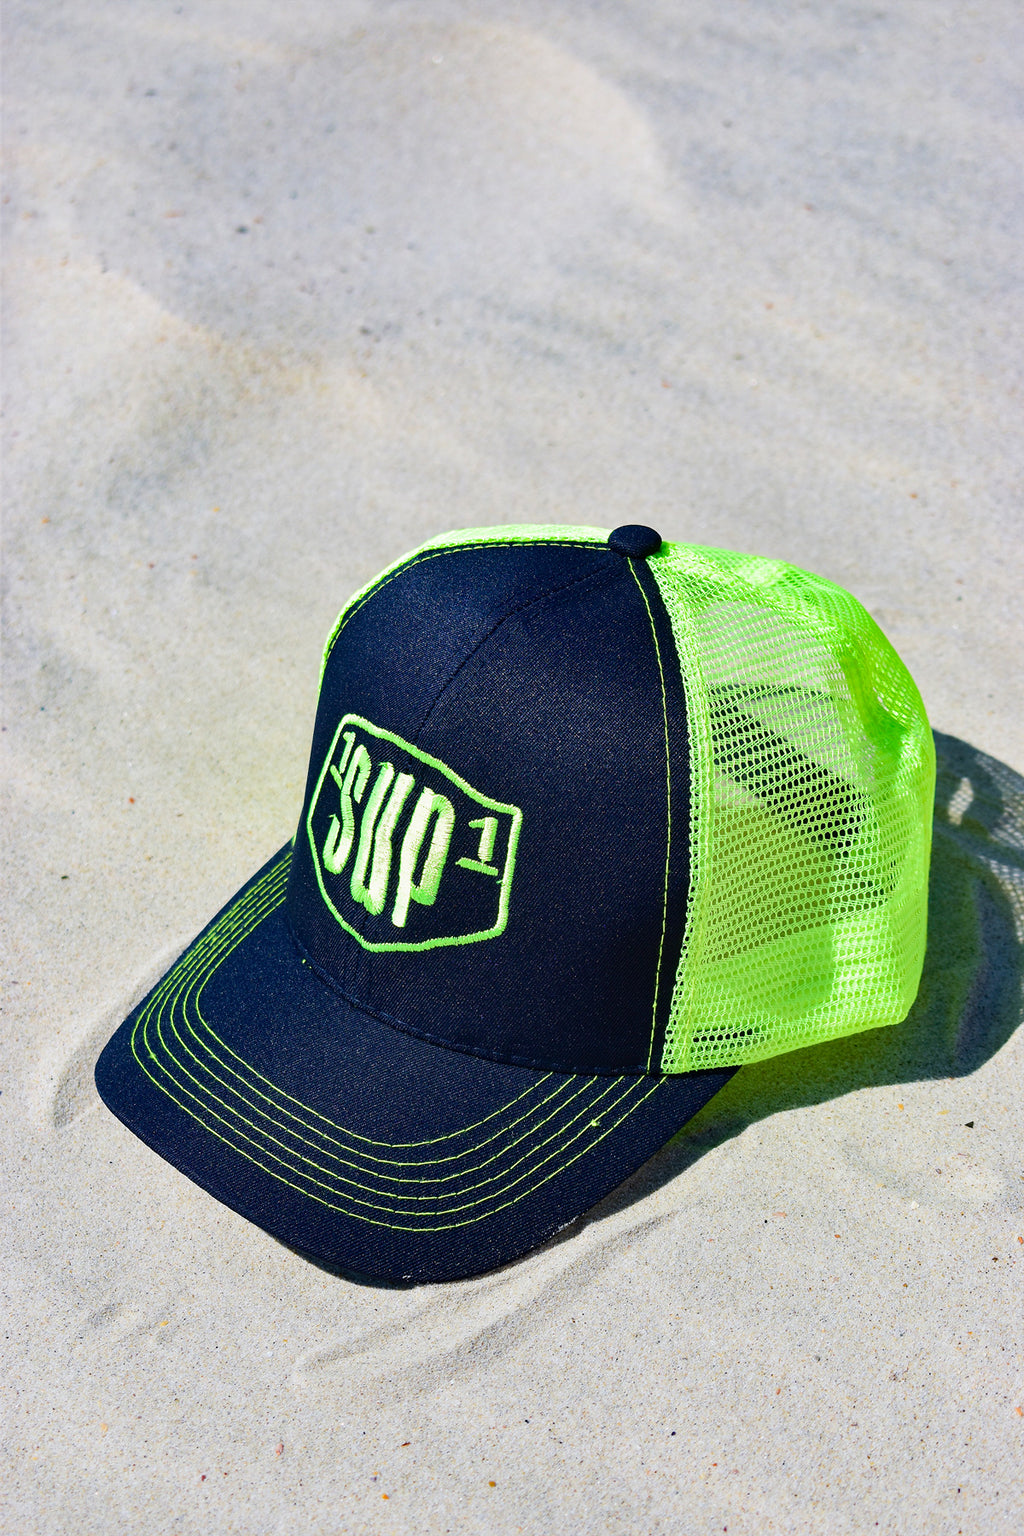 1SUP1 Baseball Cap (Yellow & Black)